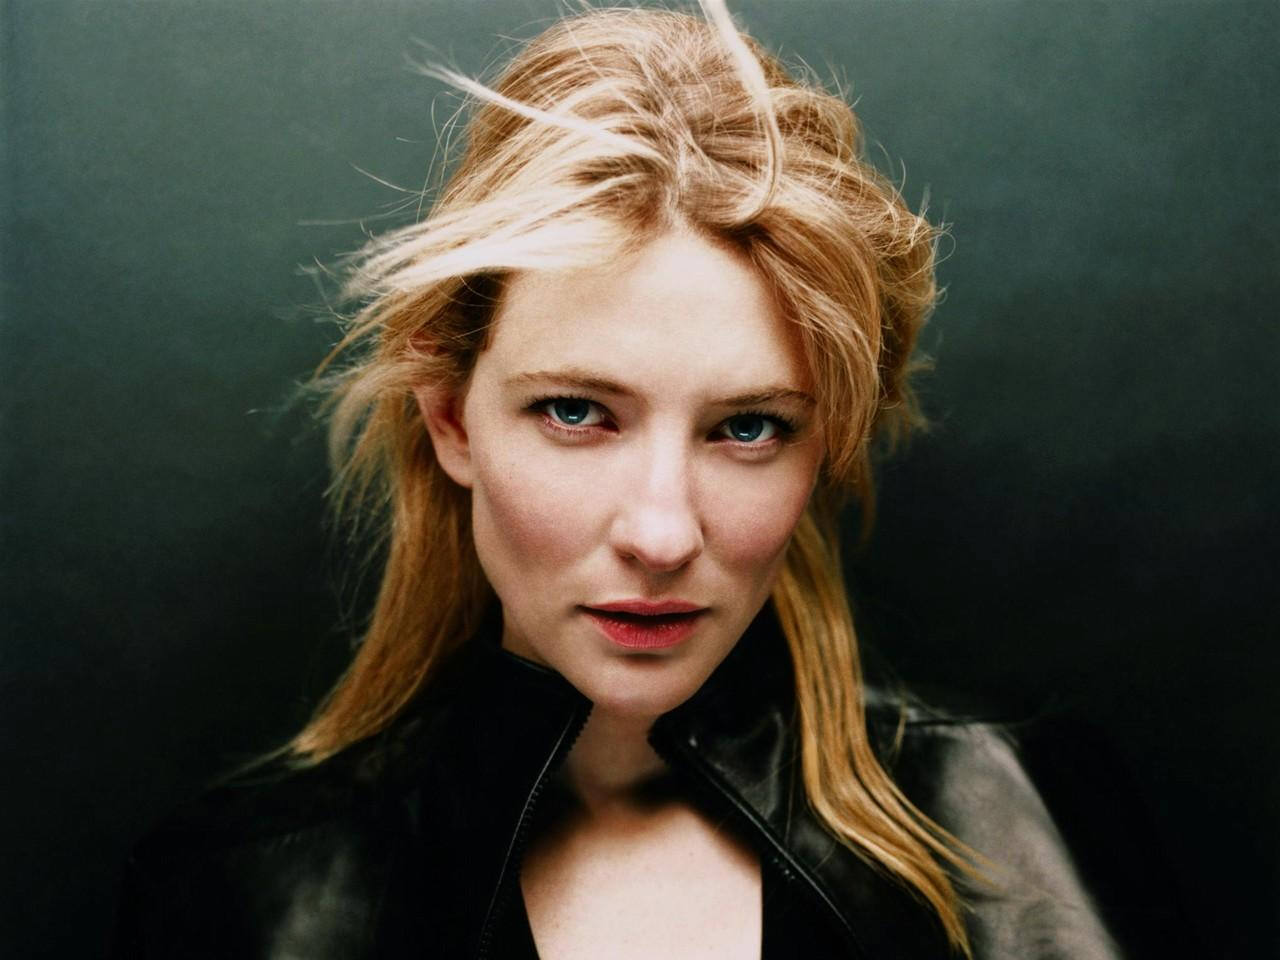 Hot Cate Blanchett nude (46 photos), Pussy, Cleavage, Boobs, cameltoe 2015